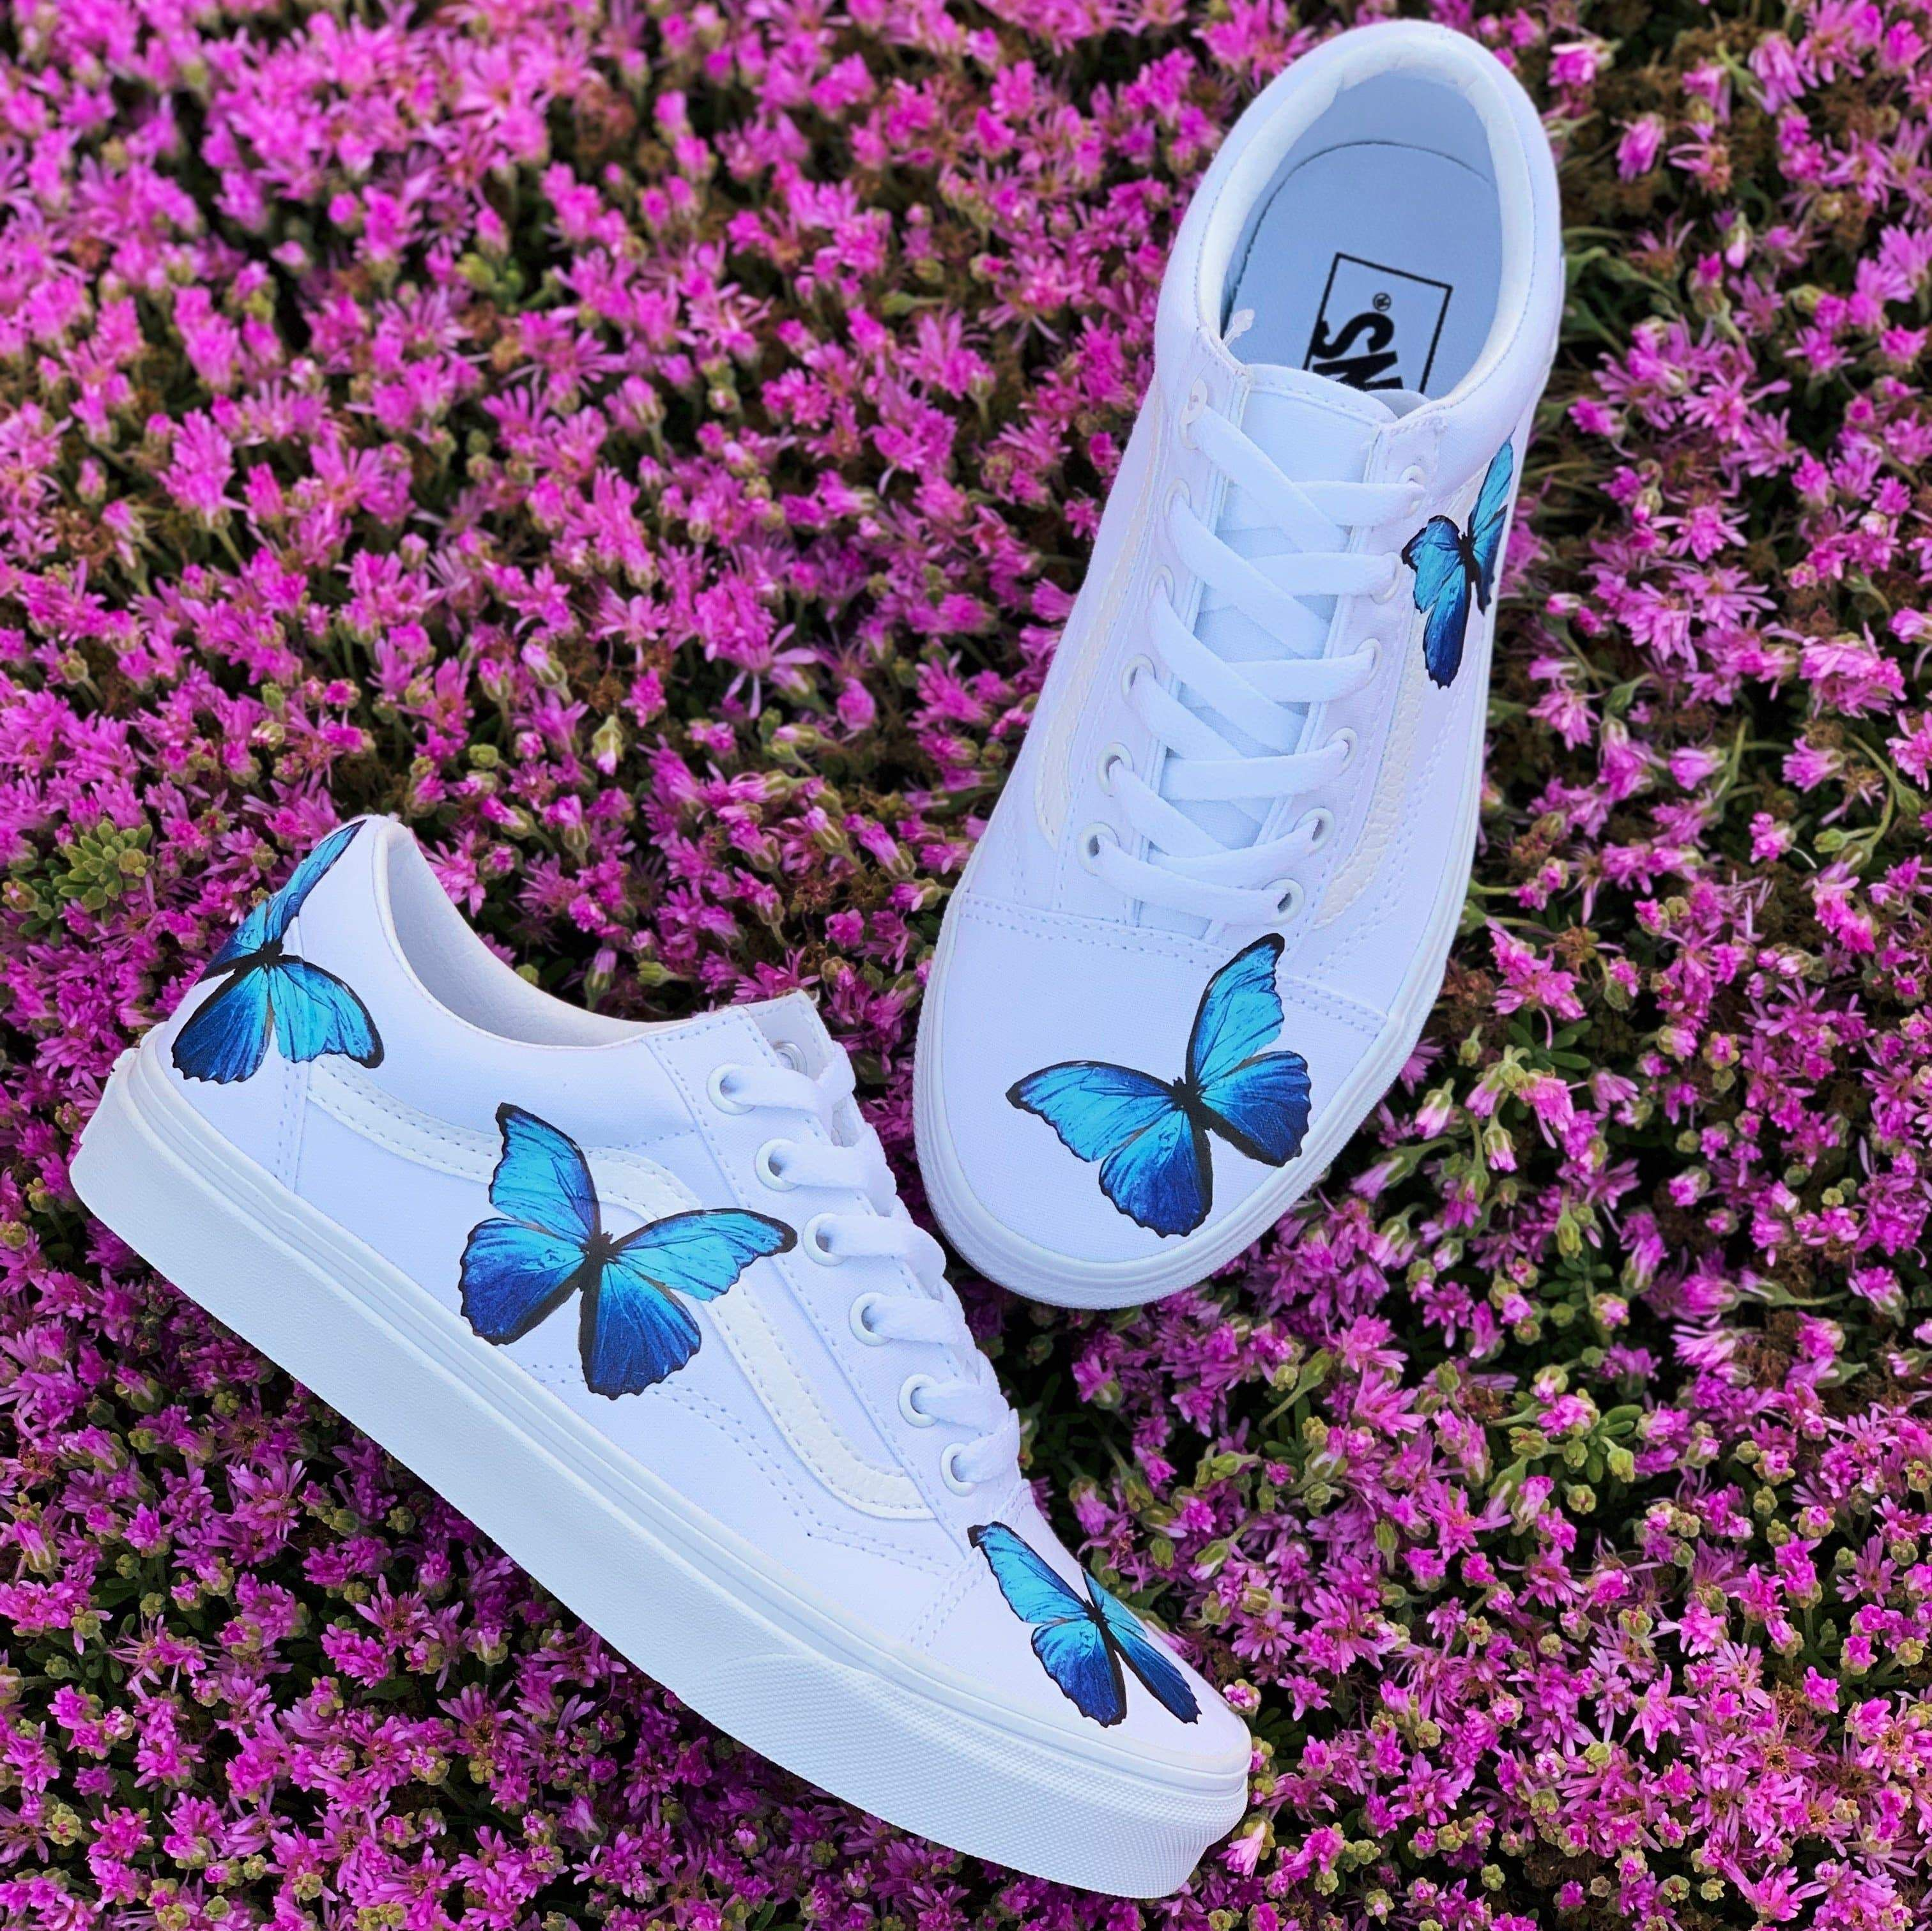 Butterfly shoes, Vans shoes old skool